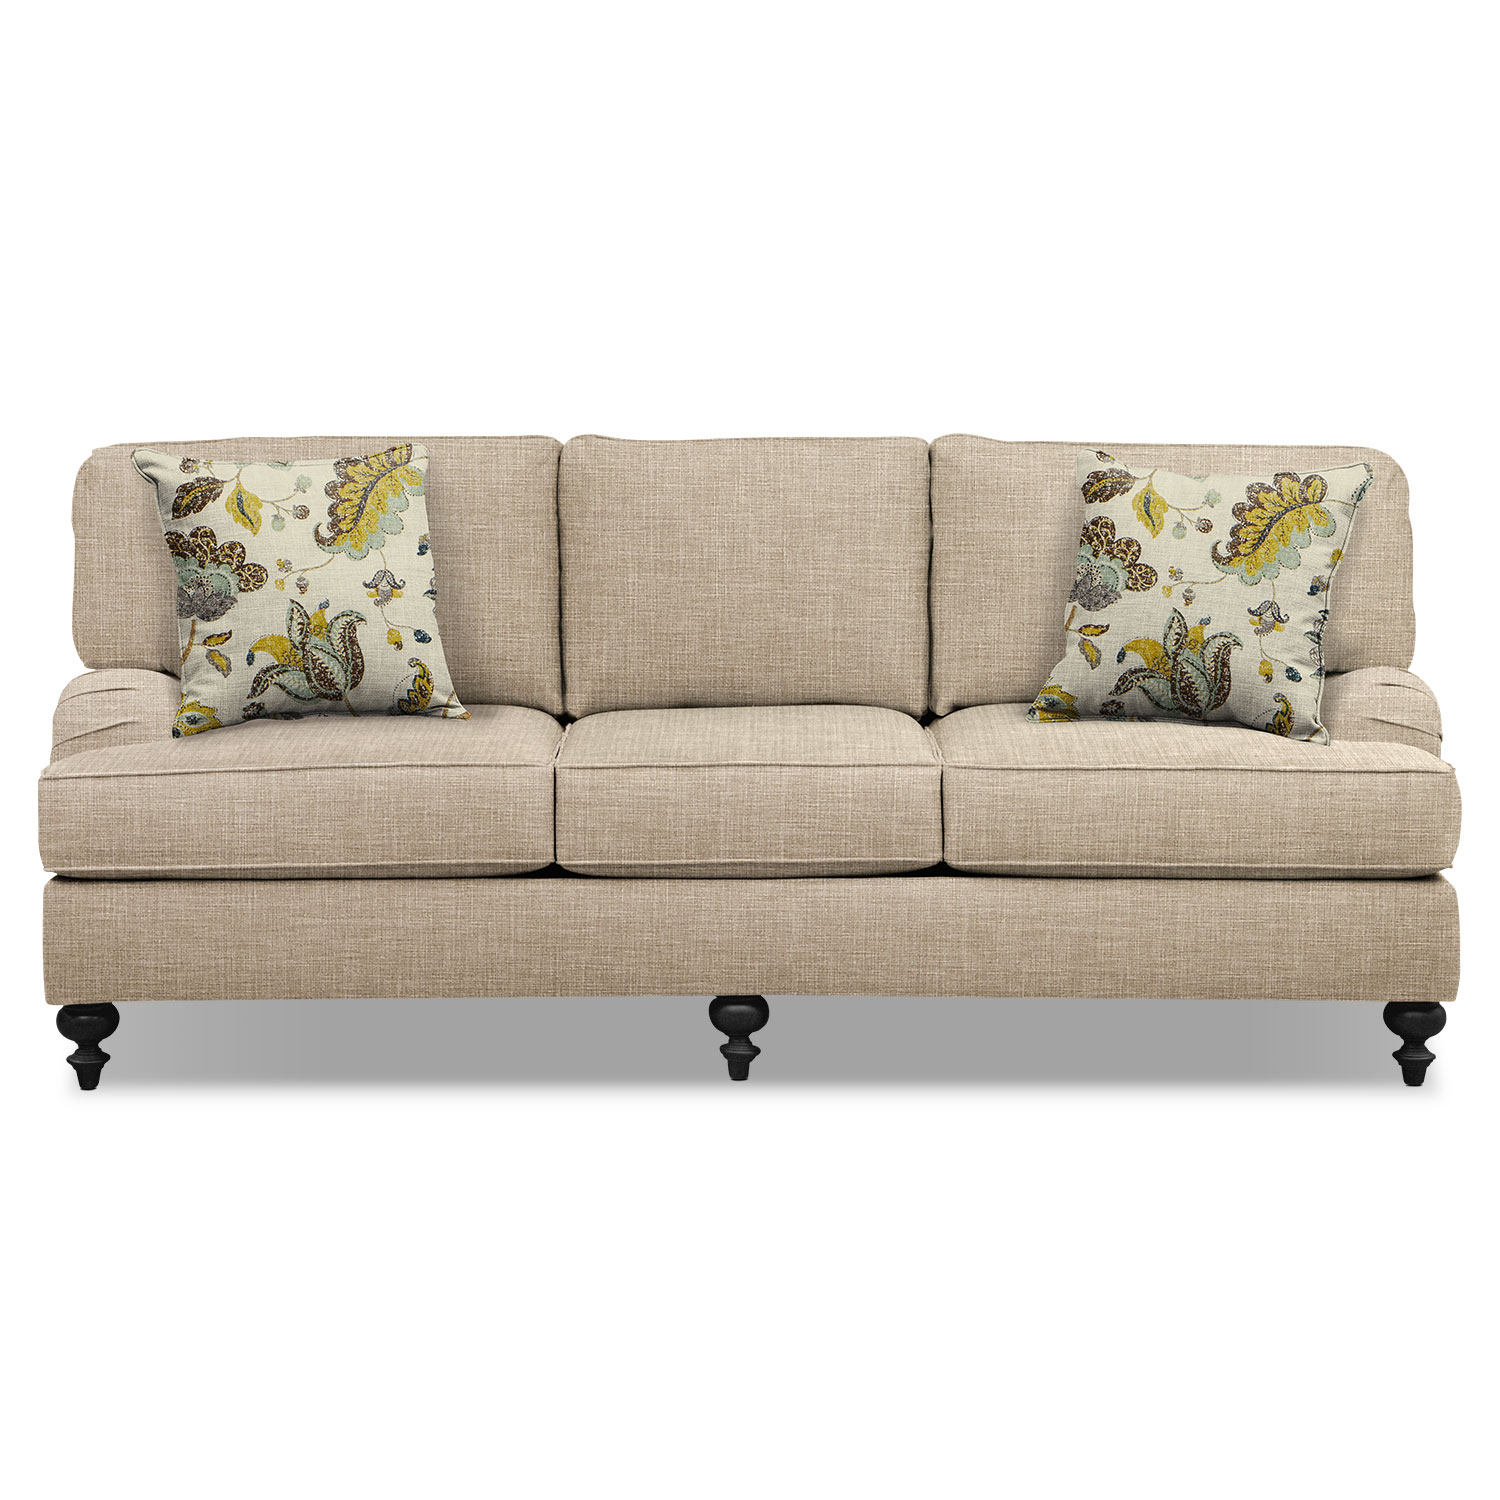 "Living Room Furniture - Avery Taupe 86"" Innerspring Sleeper Sofa"